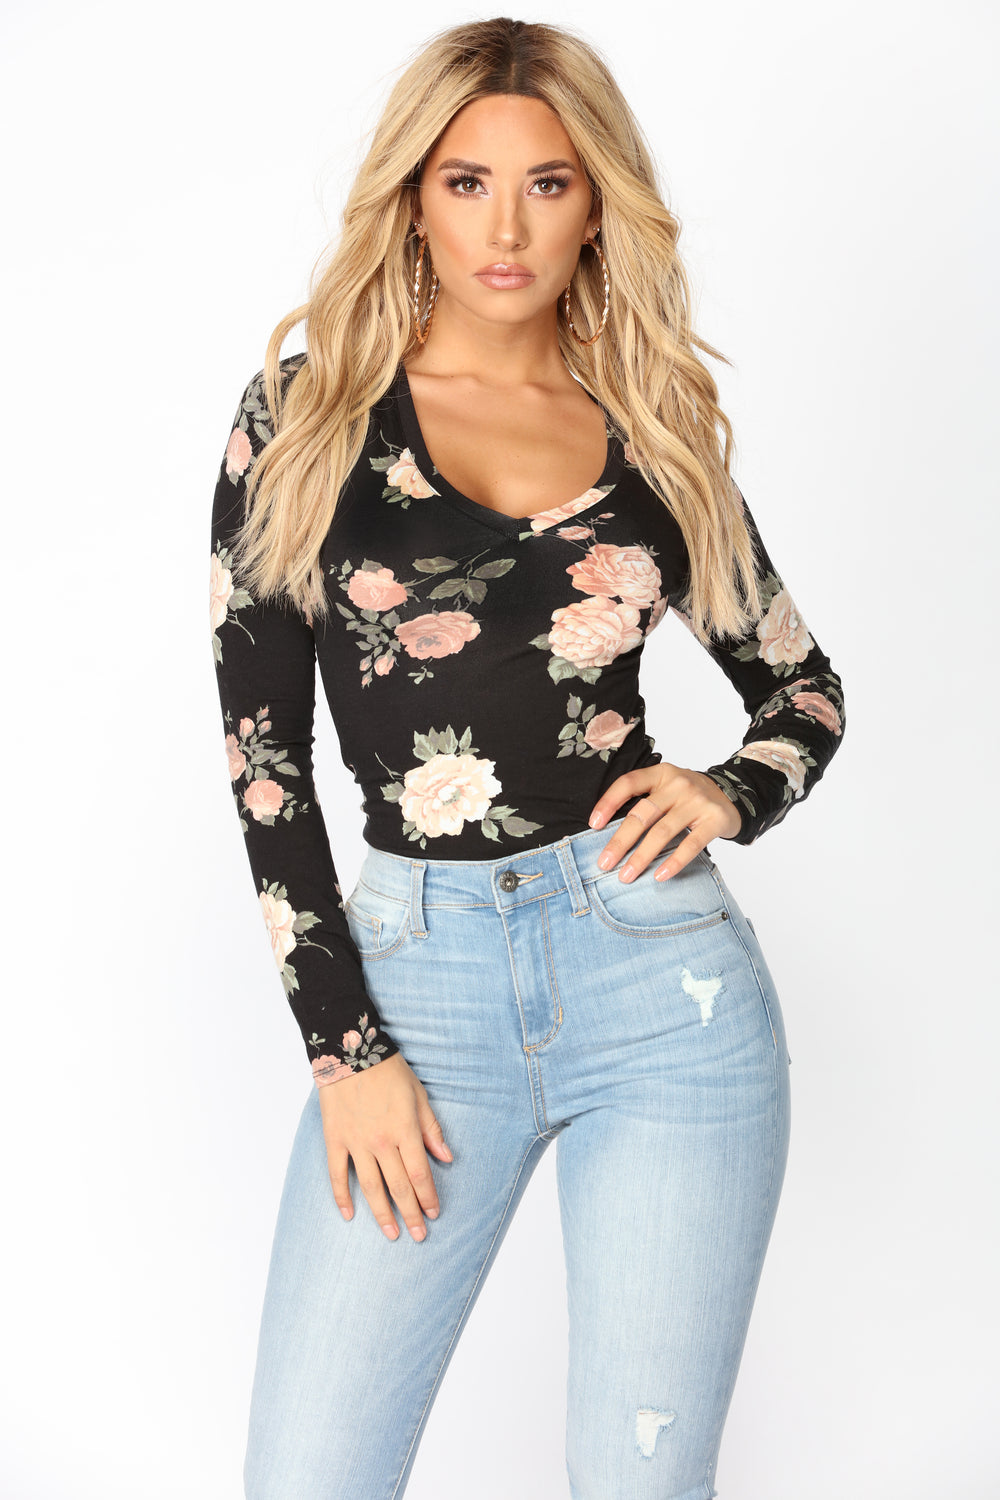 Do It My Way Floral Top - Black